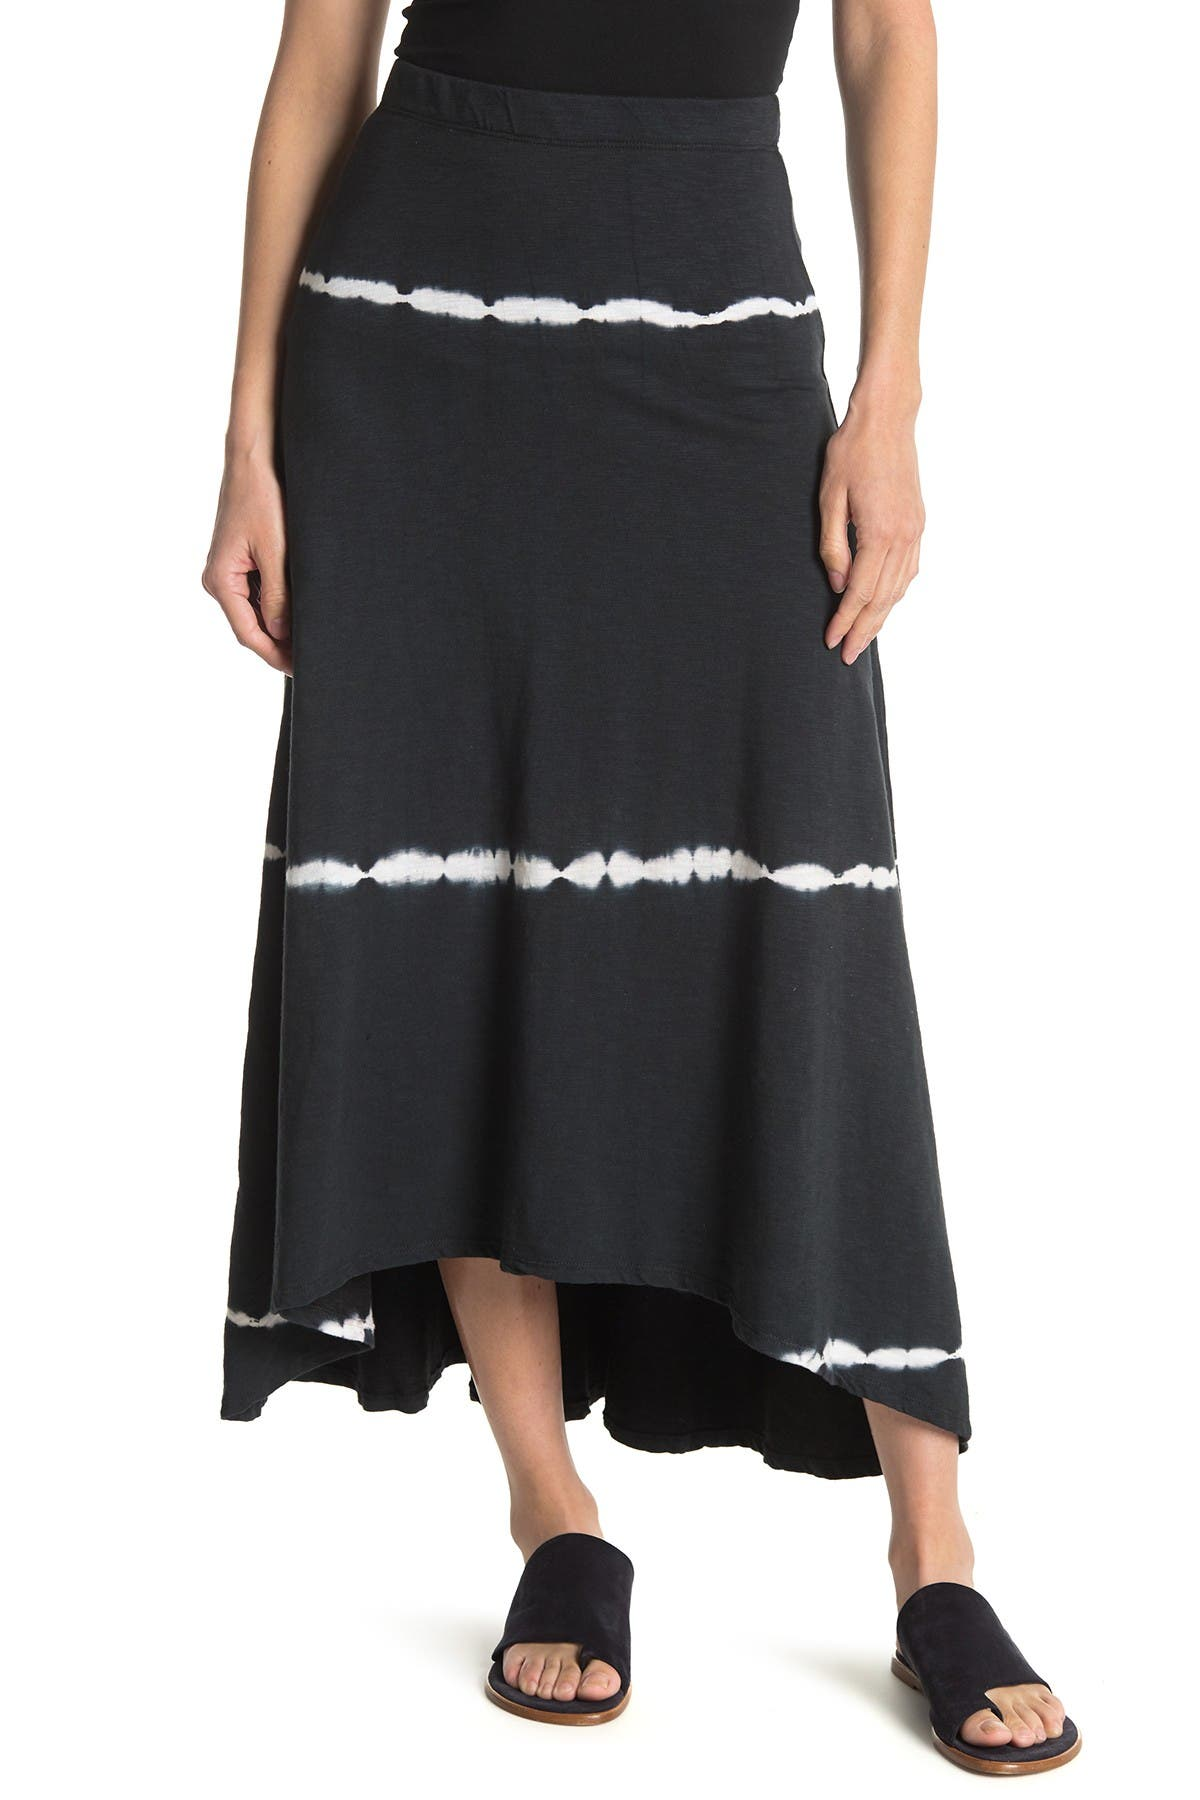 Image of Go Couture Printed High/Low Skirt